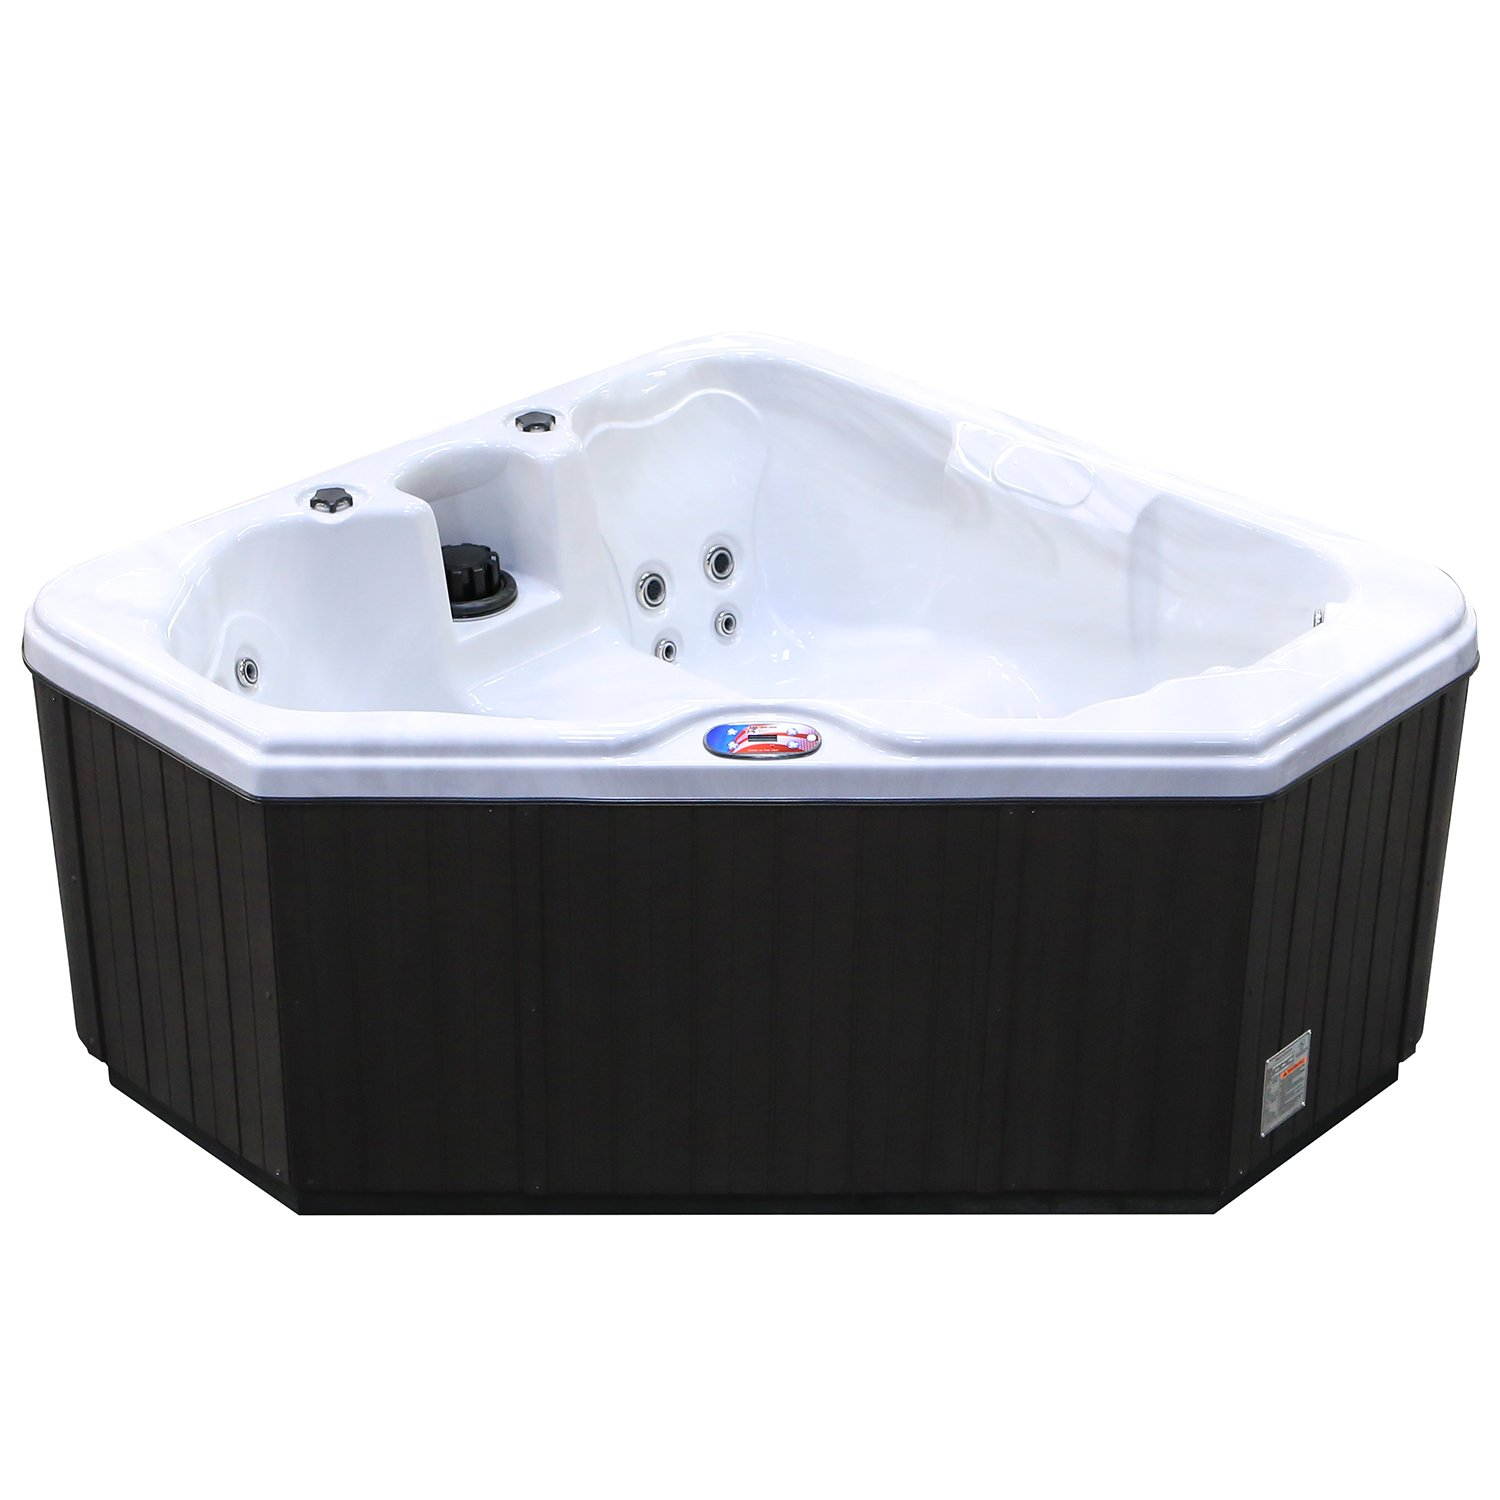 Amazon.com : American Spas AM-628TS 2-Person 28-Jet Triangle Spa ...